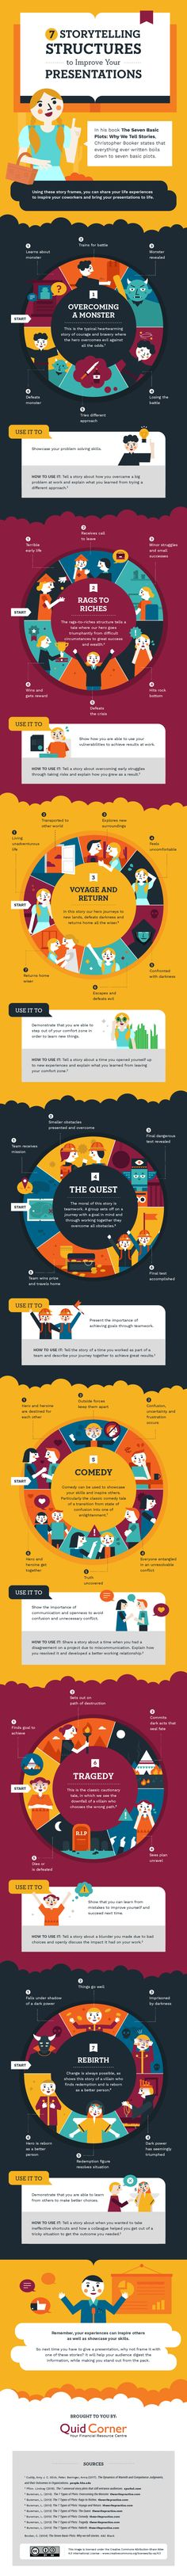 7 Storytelling Structures to Improve Your Presentations - infographic #contentmarketingstorytelling